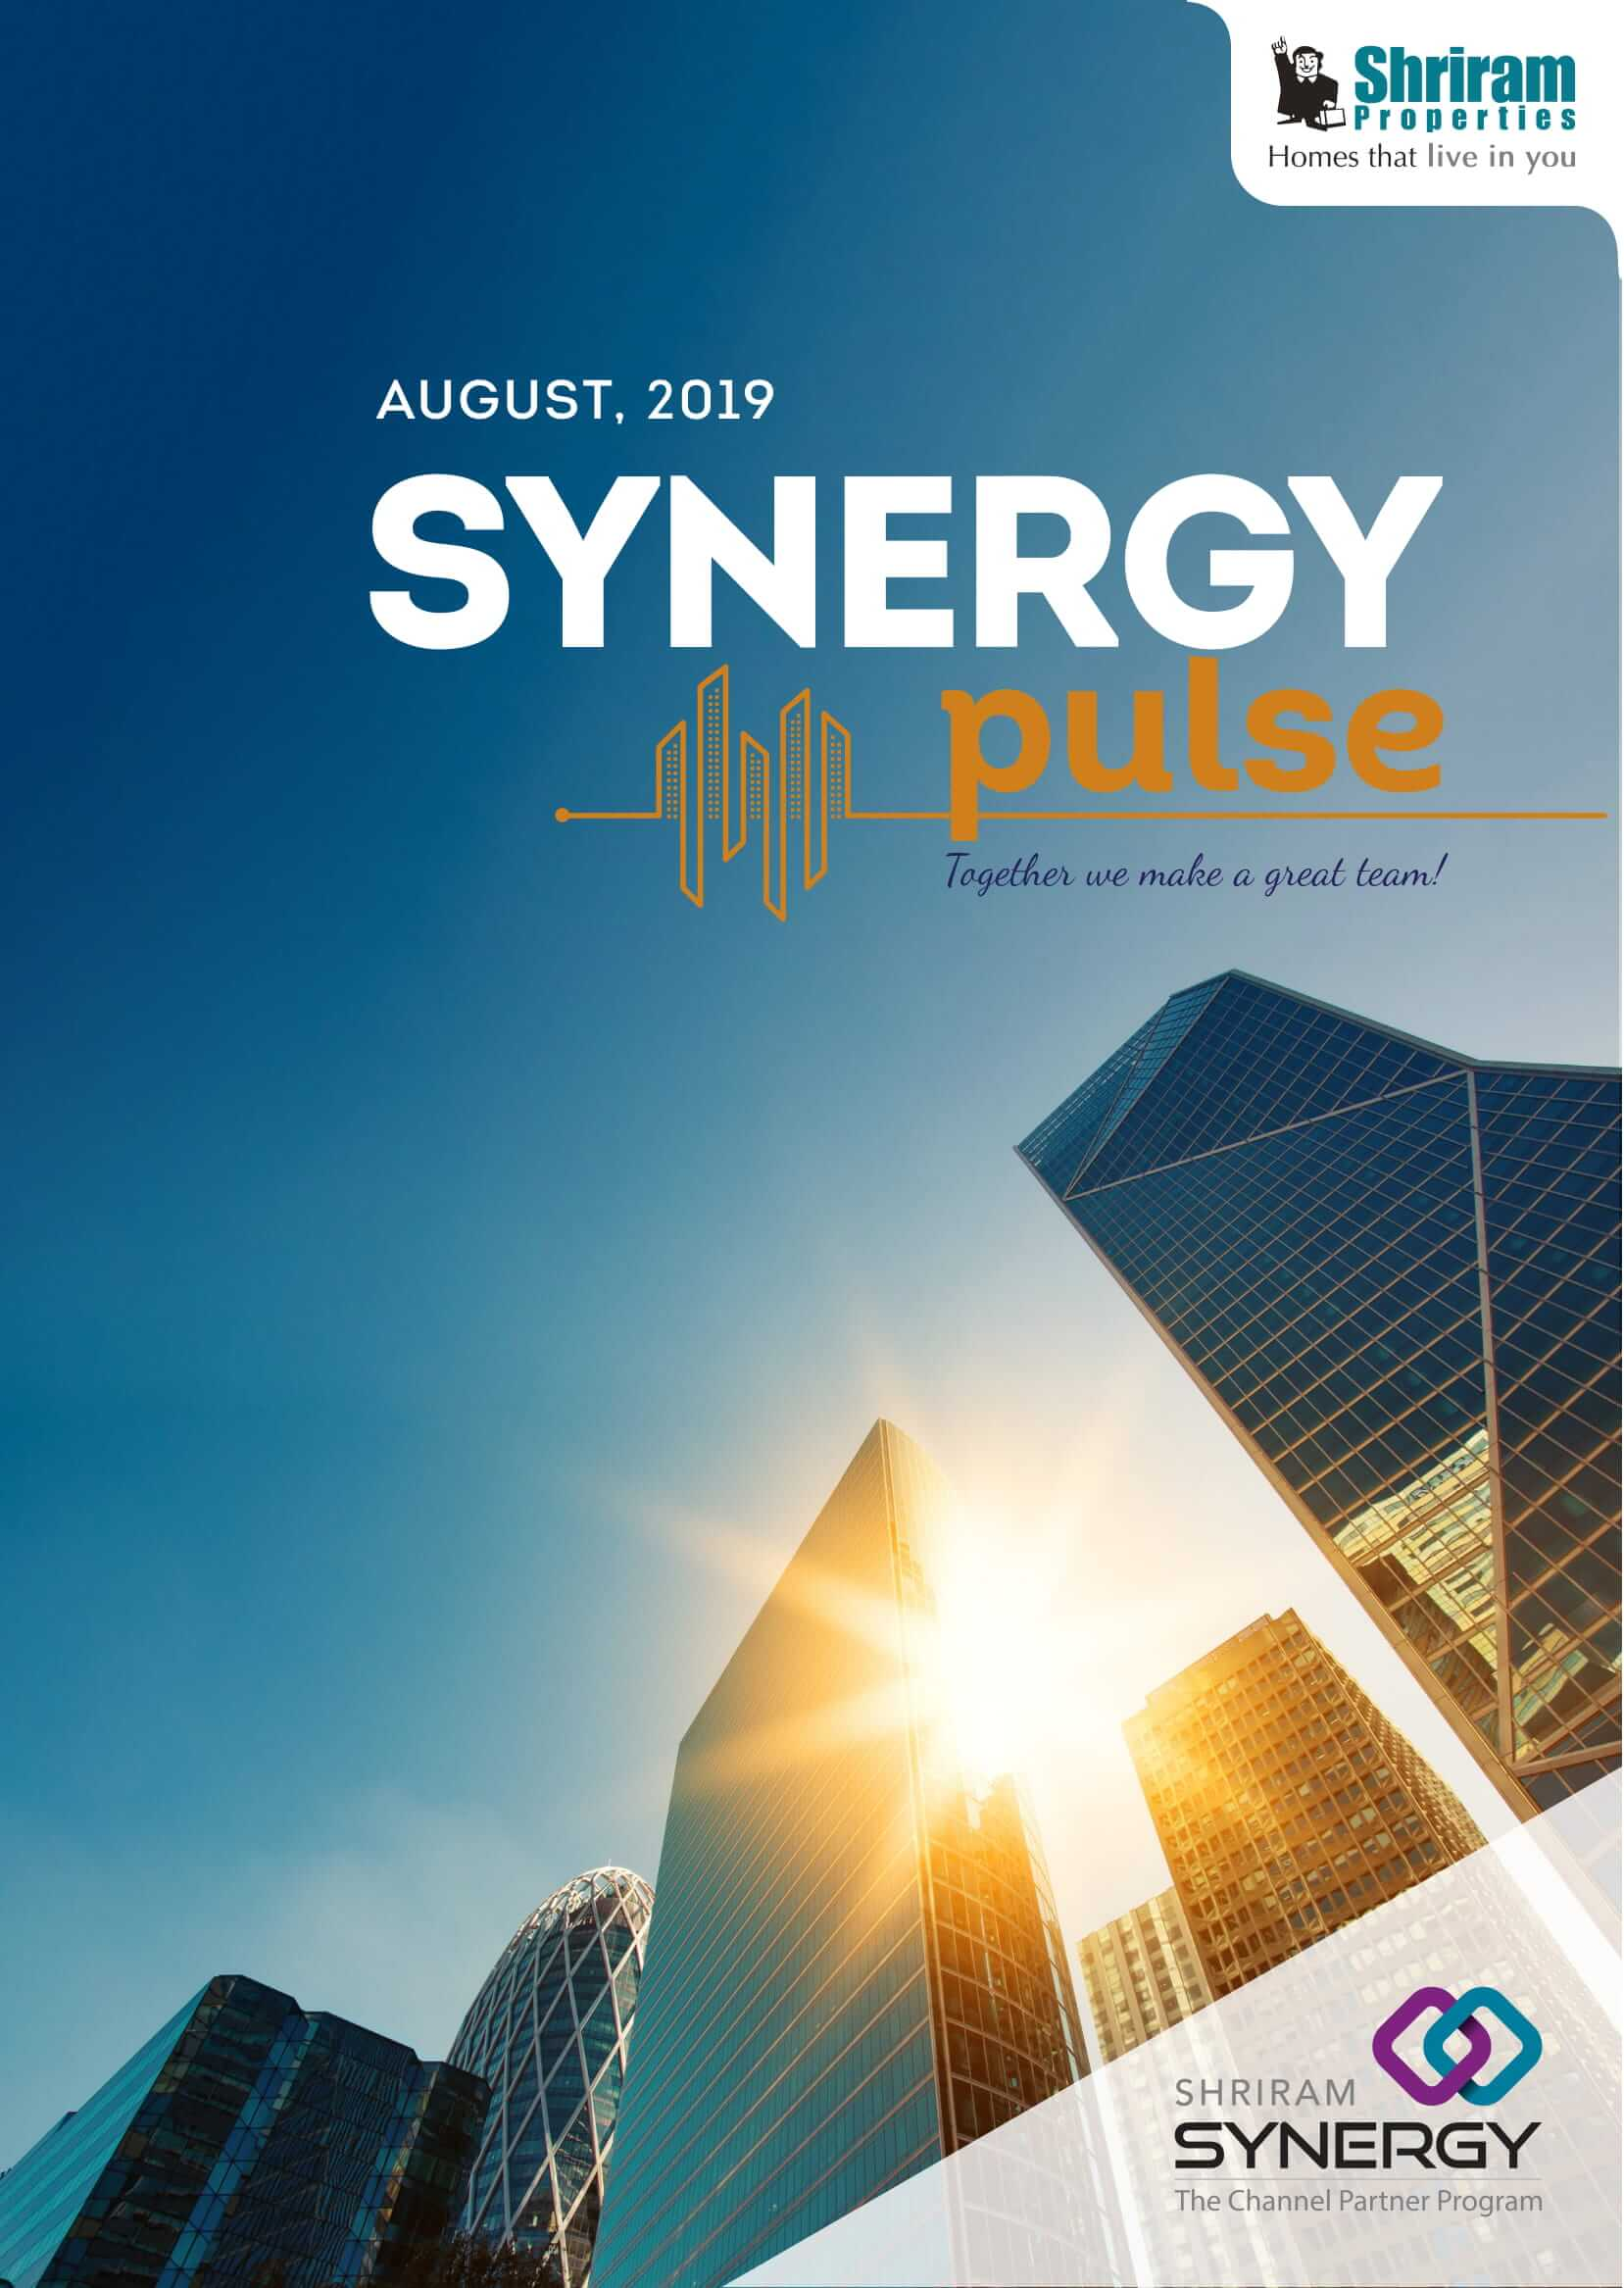 Synergy newsletter